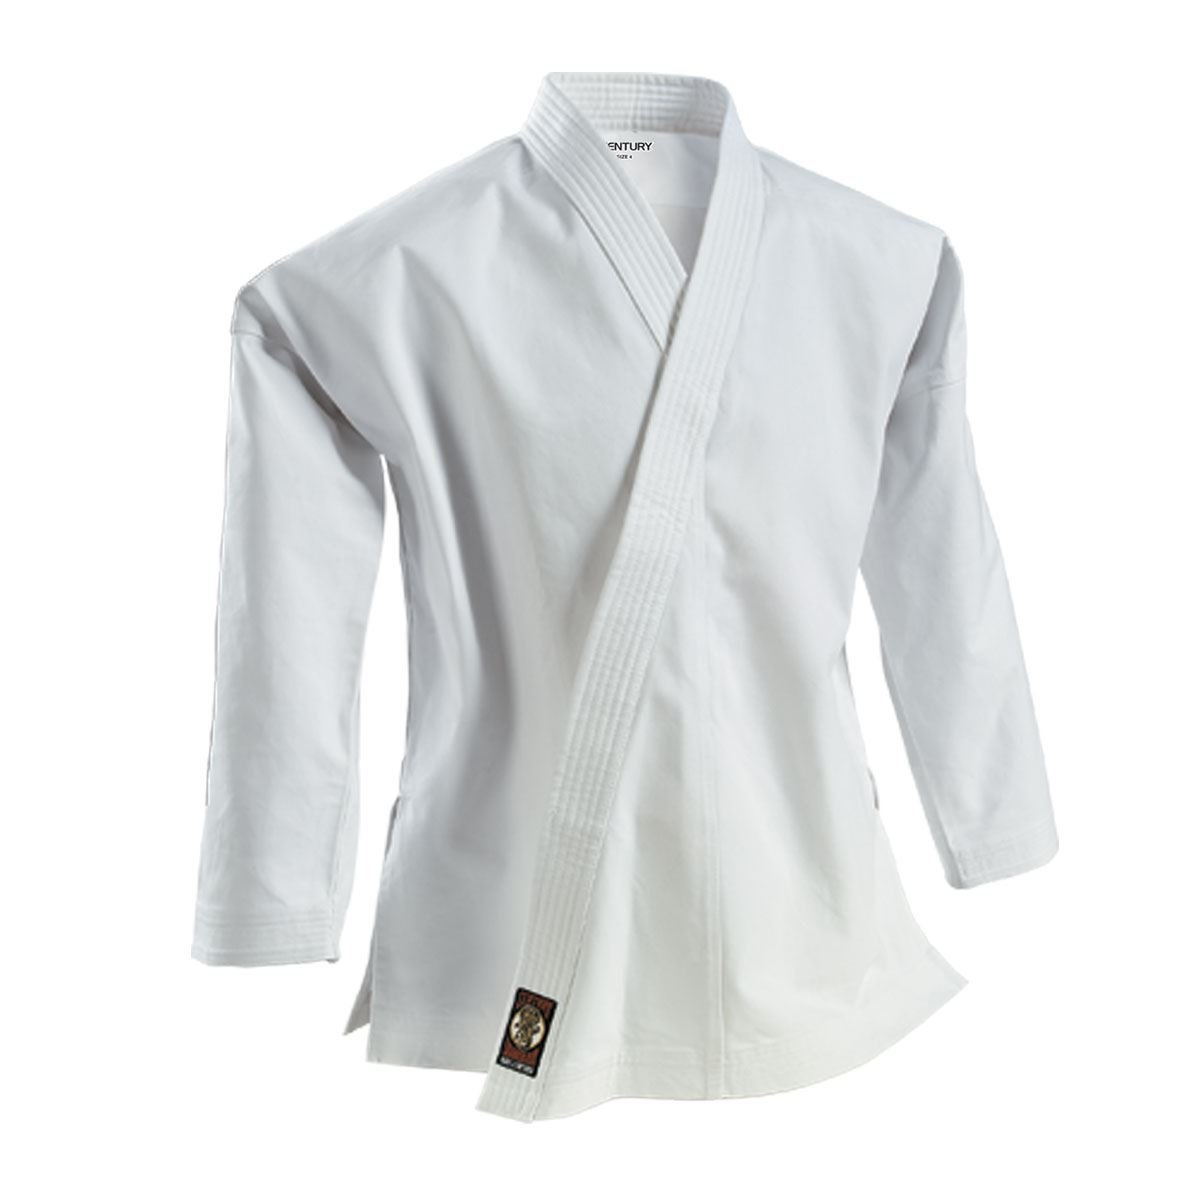 Century Martial Arts 14 oz. Traditional Ironman Heavyweight Martial Arts Karate Jacket - White, 7 - Adult XX-Large by Century